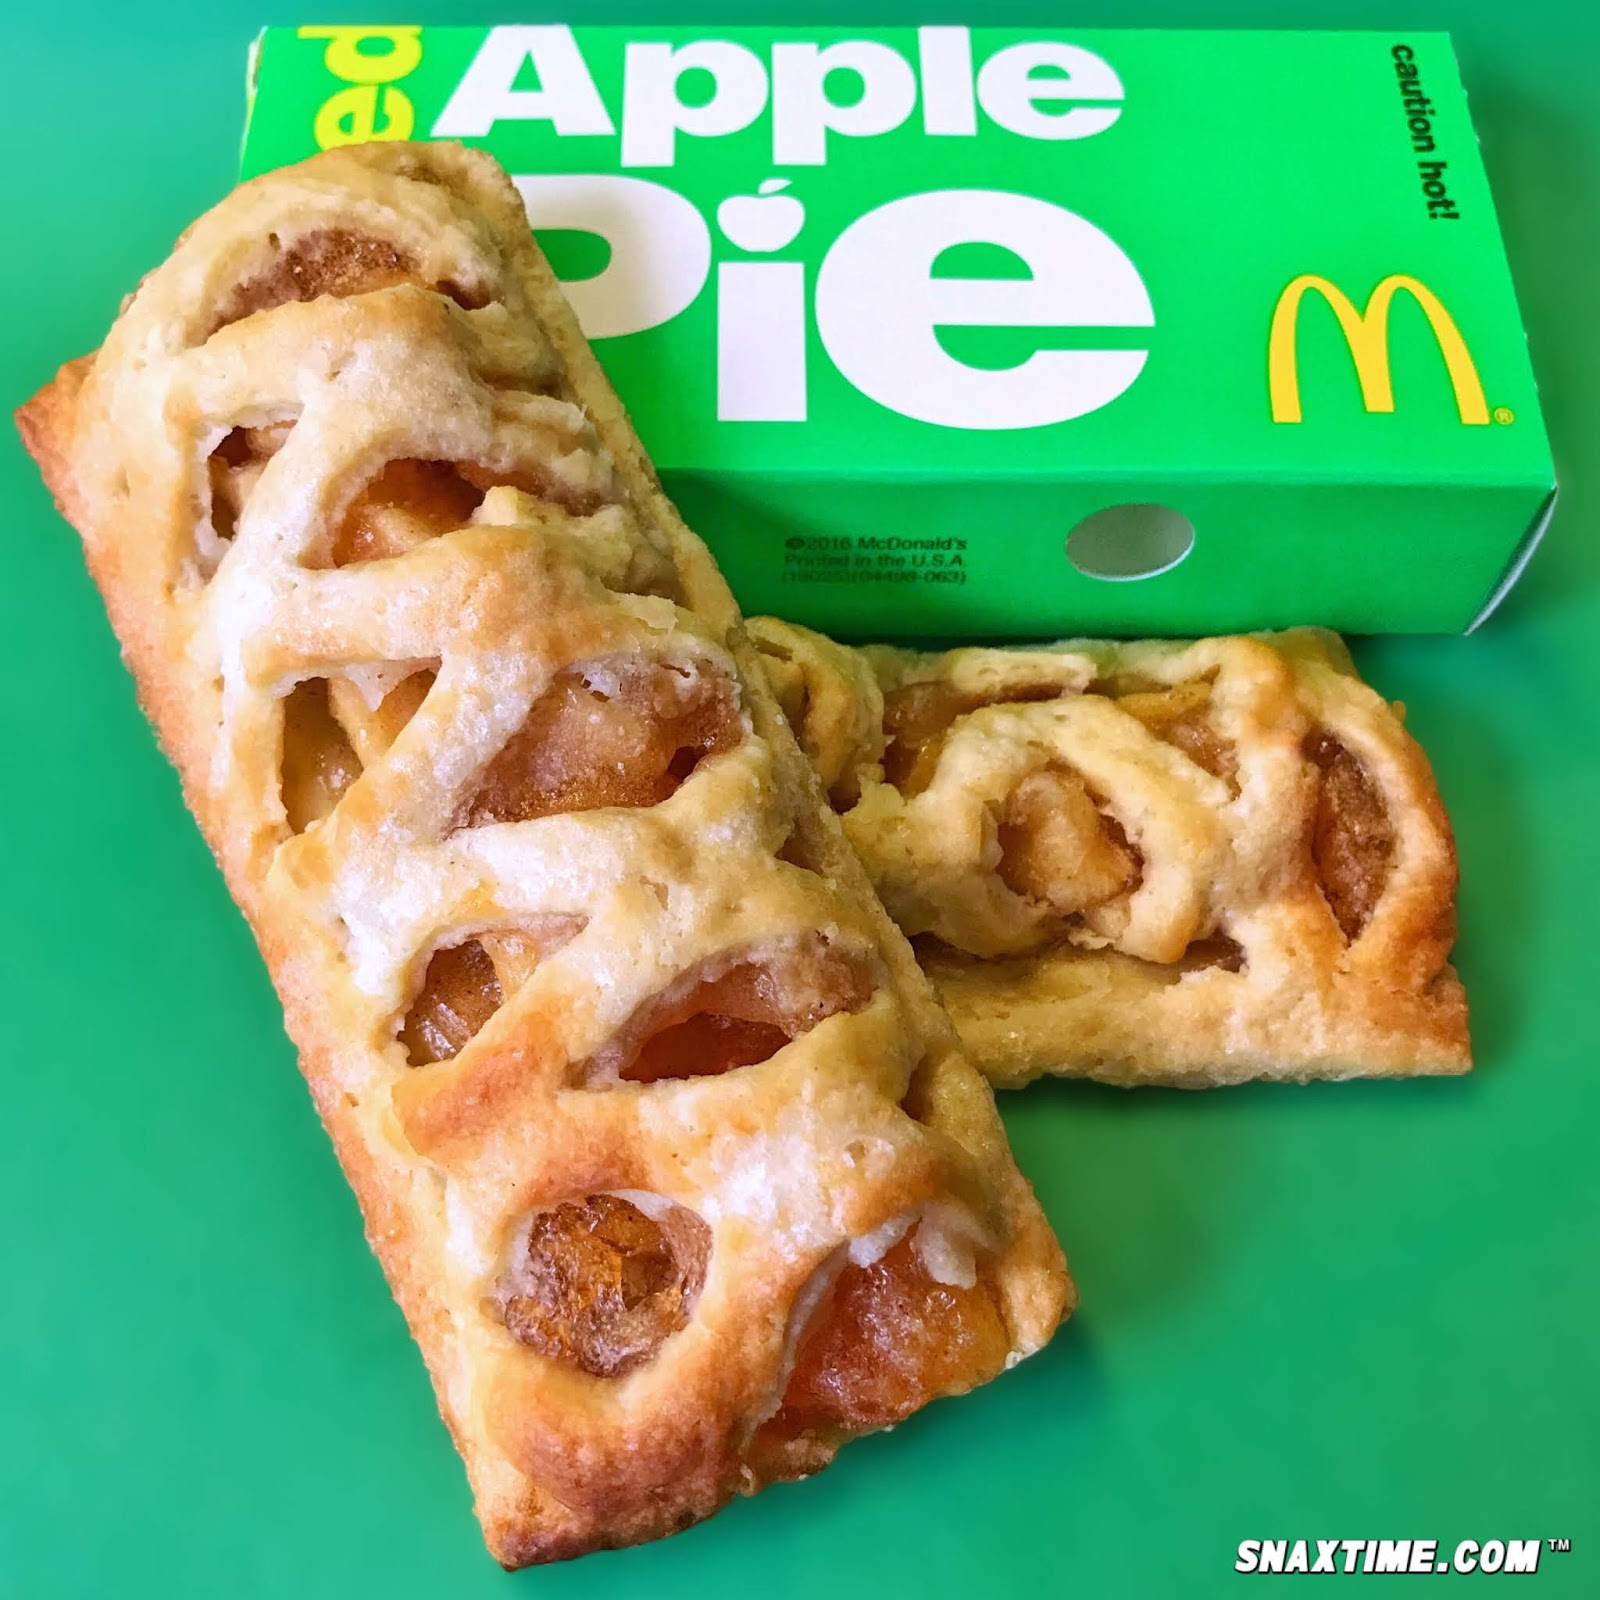 McDonalds First Started Testing A New Apple Pie Recipe In 2016 But Now The Upgrade Is Available Nationwide For This Version Of Definitive American